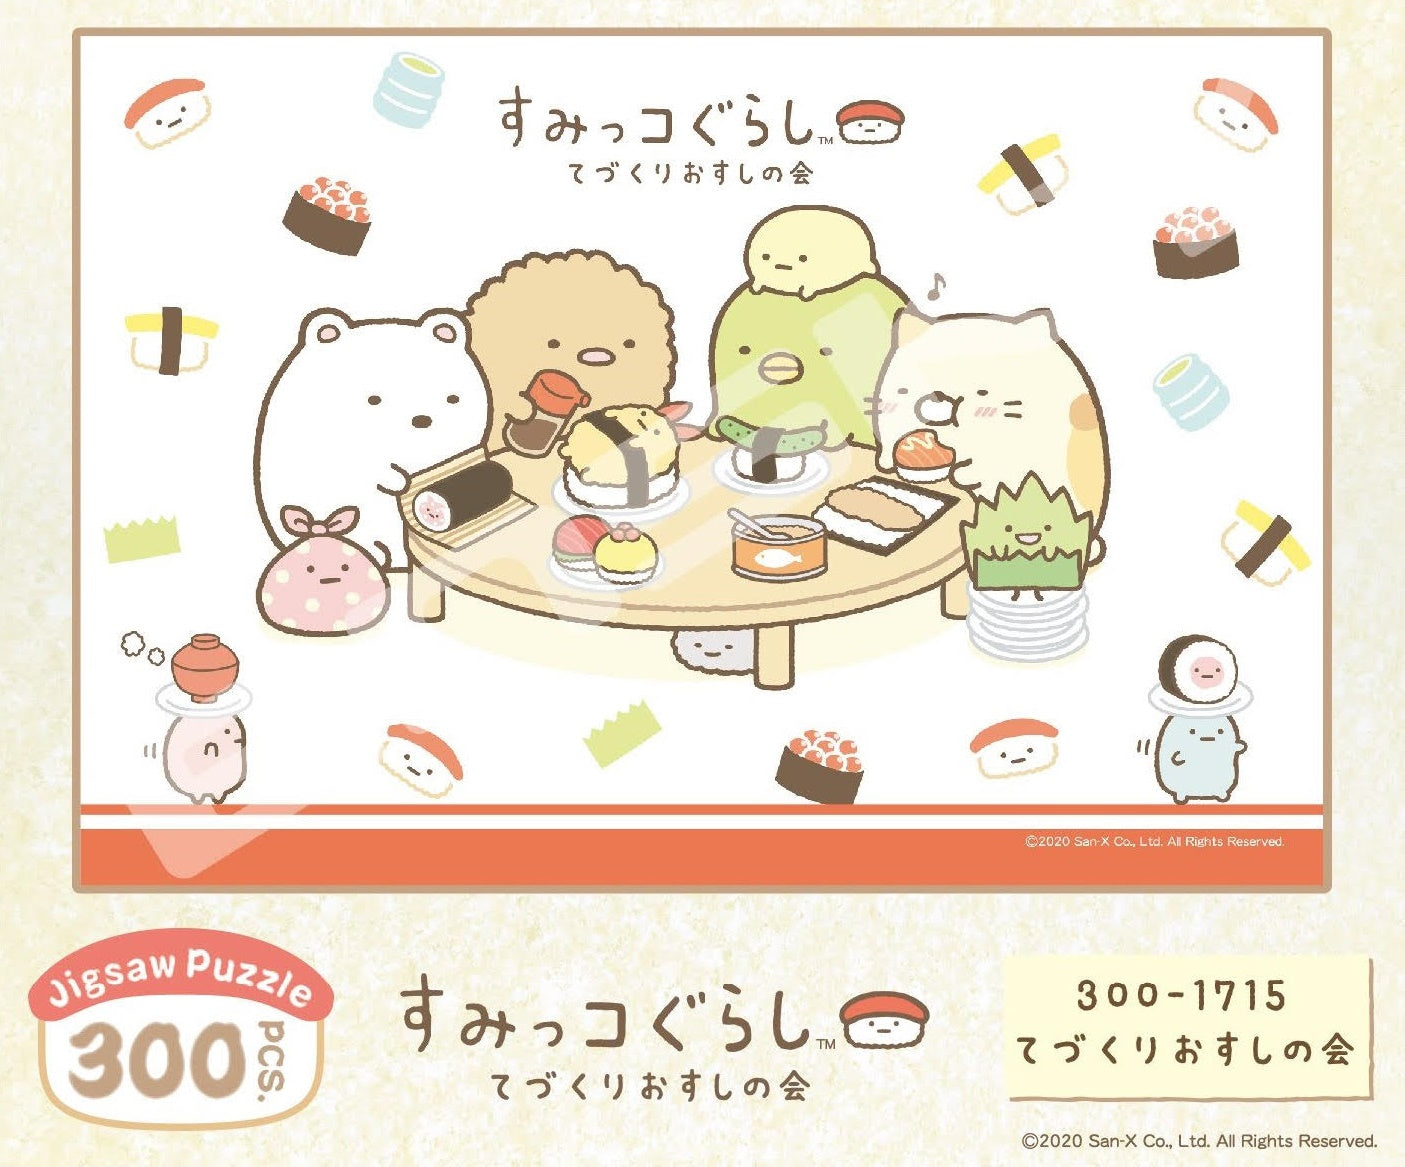 【預訂日期至15-Aug-20】Ensky Sumikko Living 300-1715 Hand made Sushi Team jigsaw puzzle